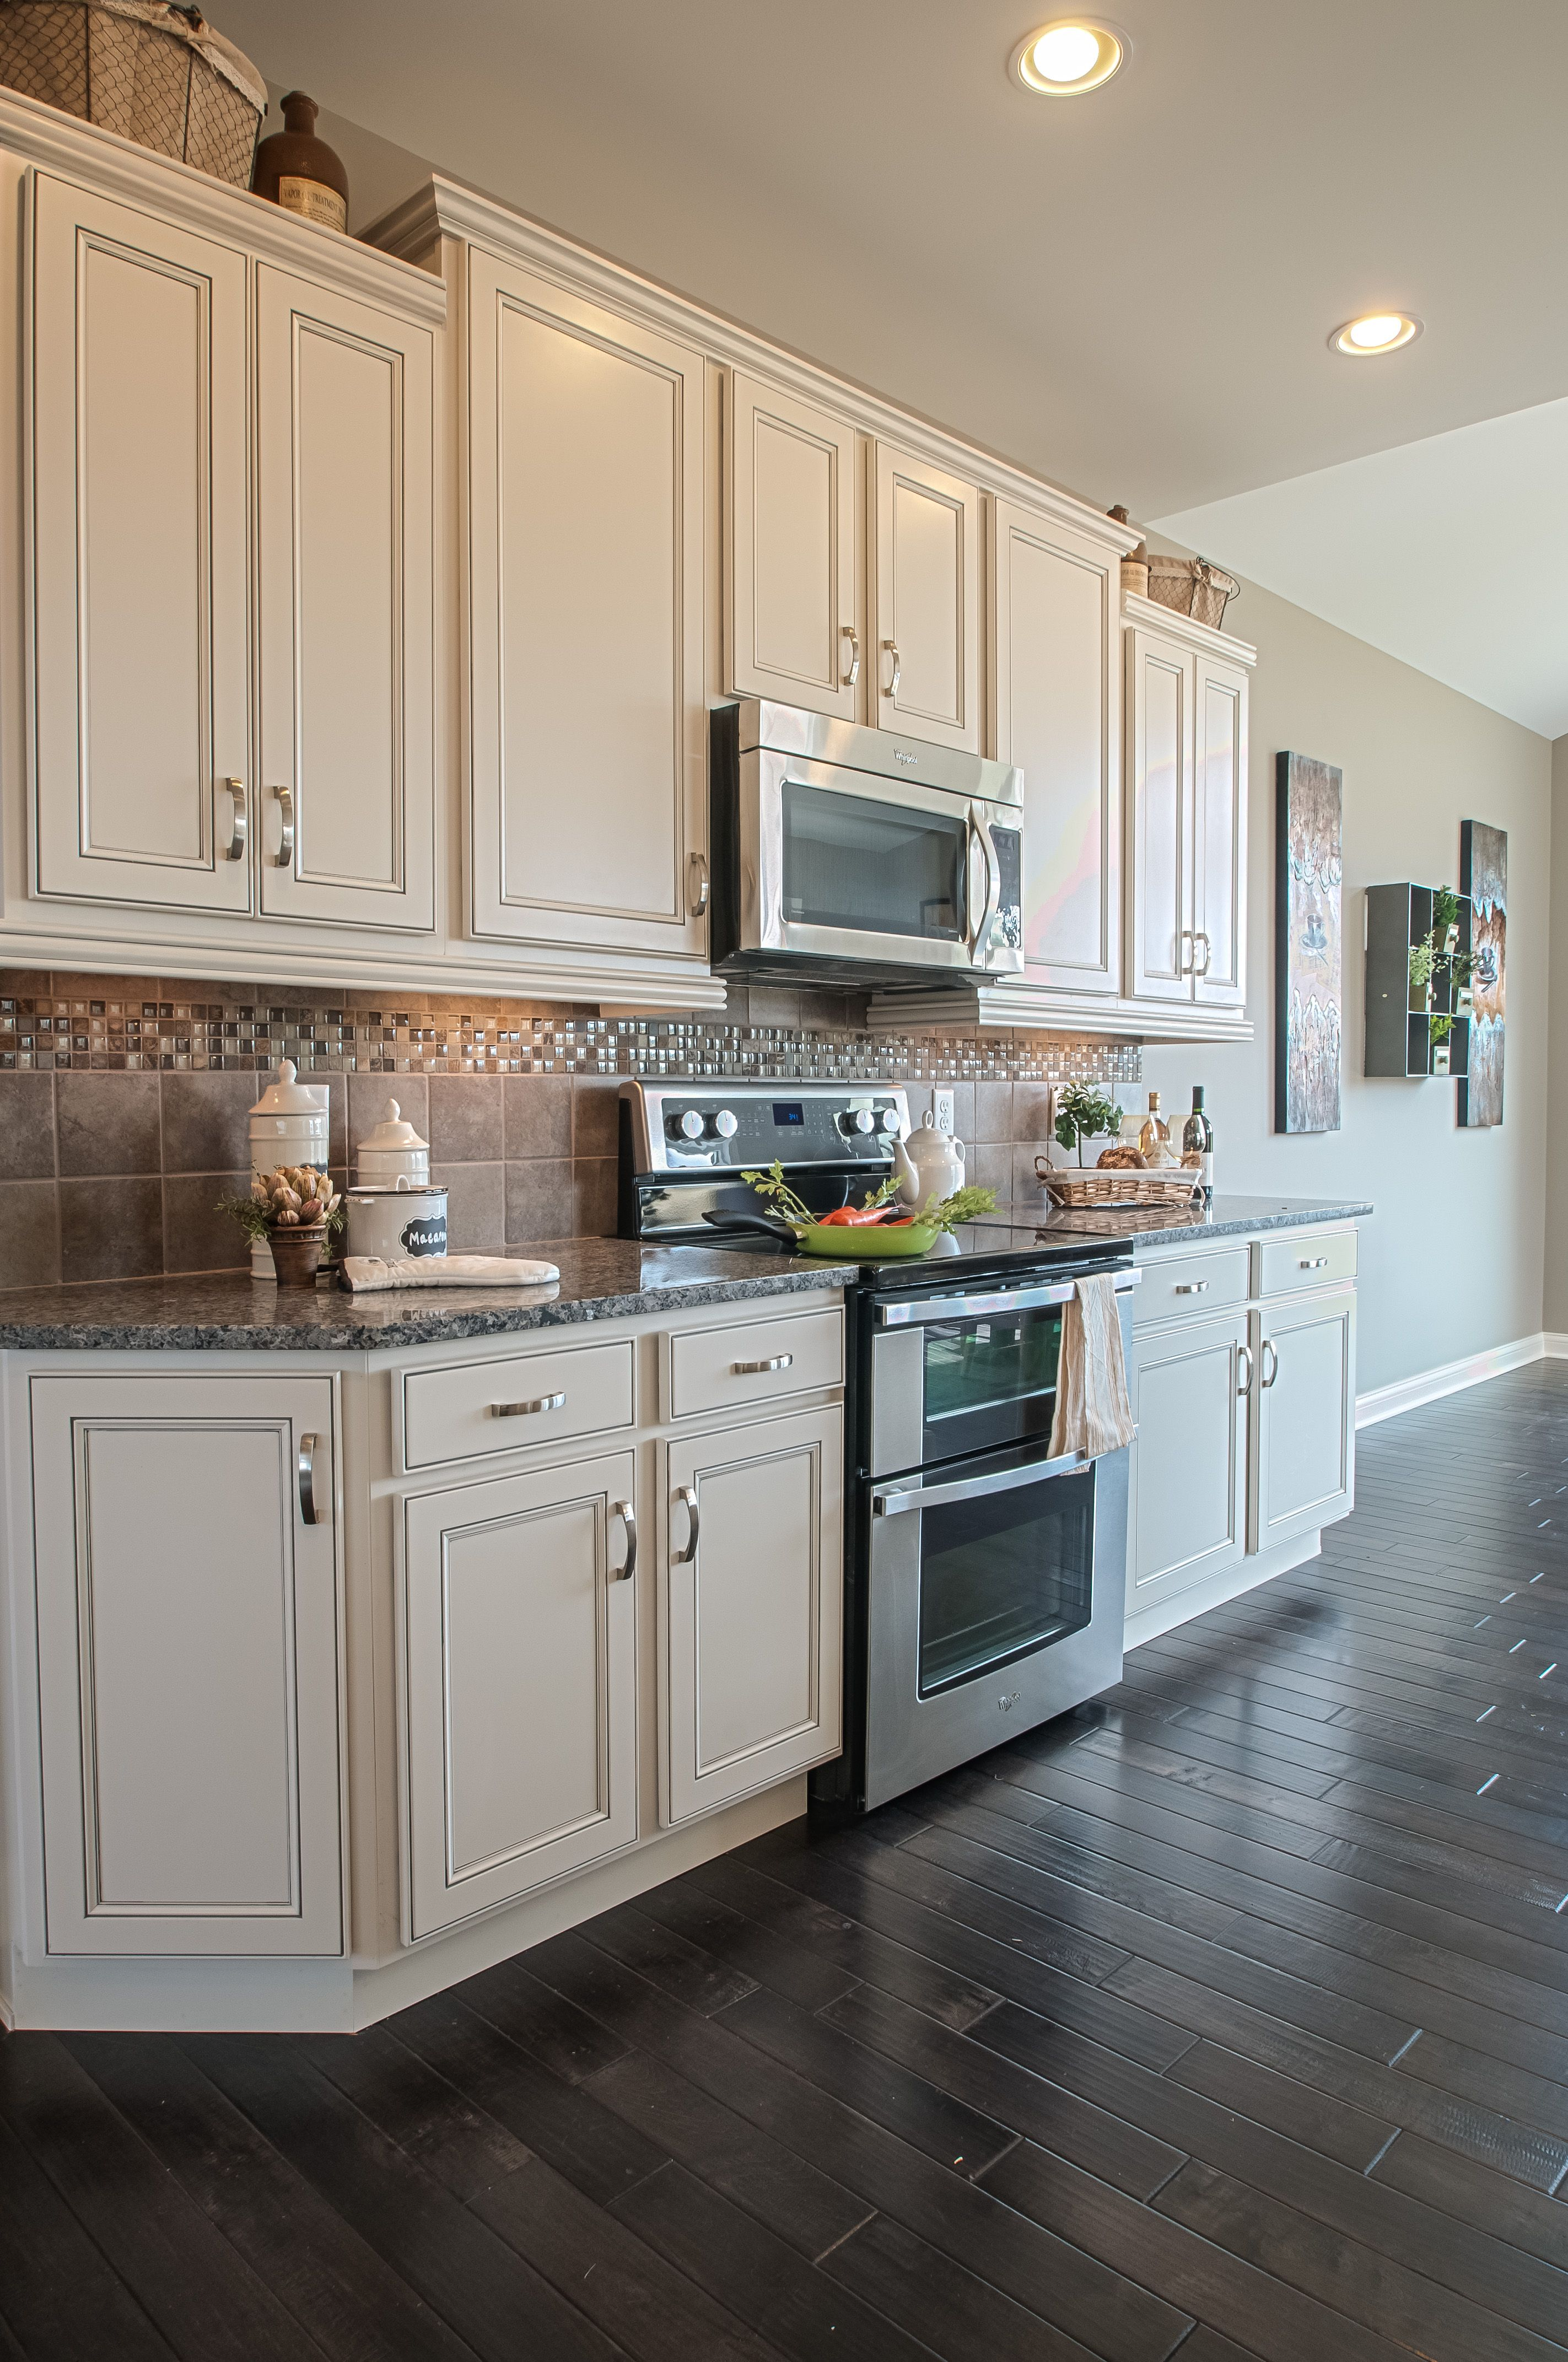 This is what my kitchen will look like WIth white cabinets and dark